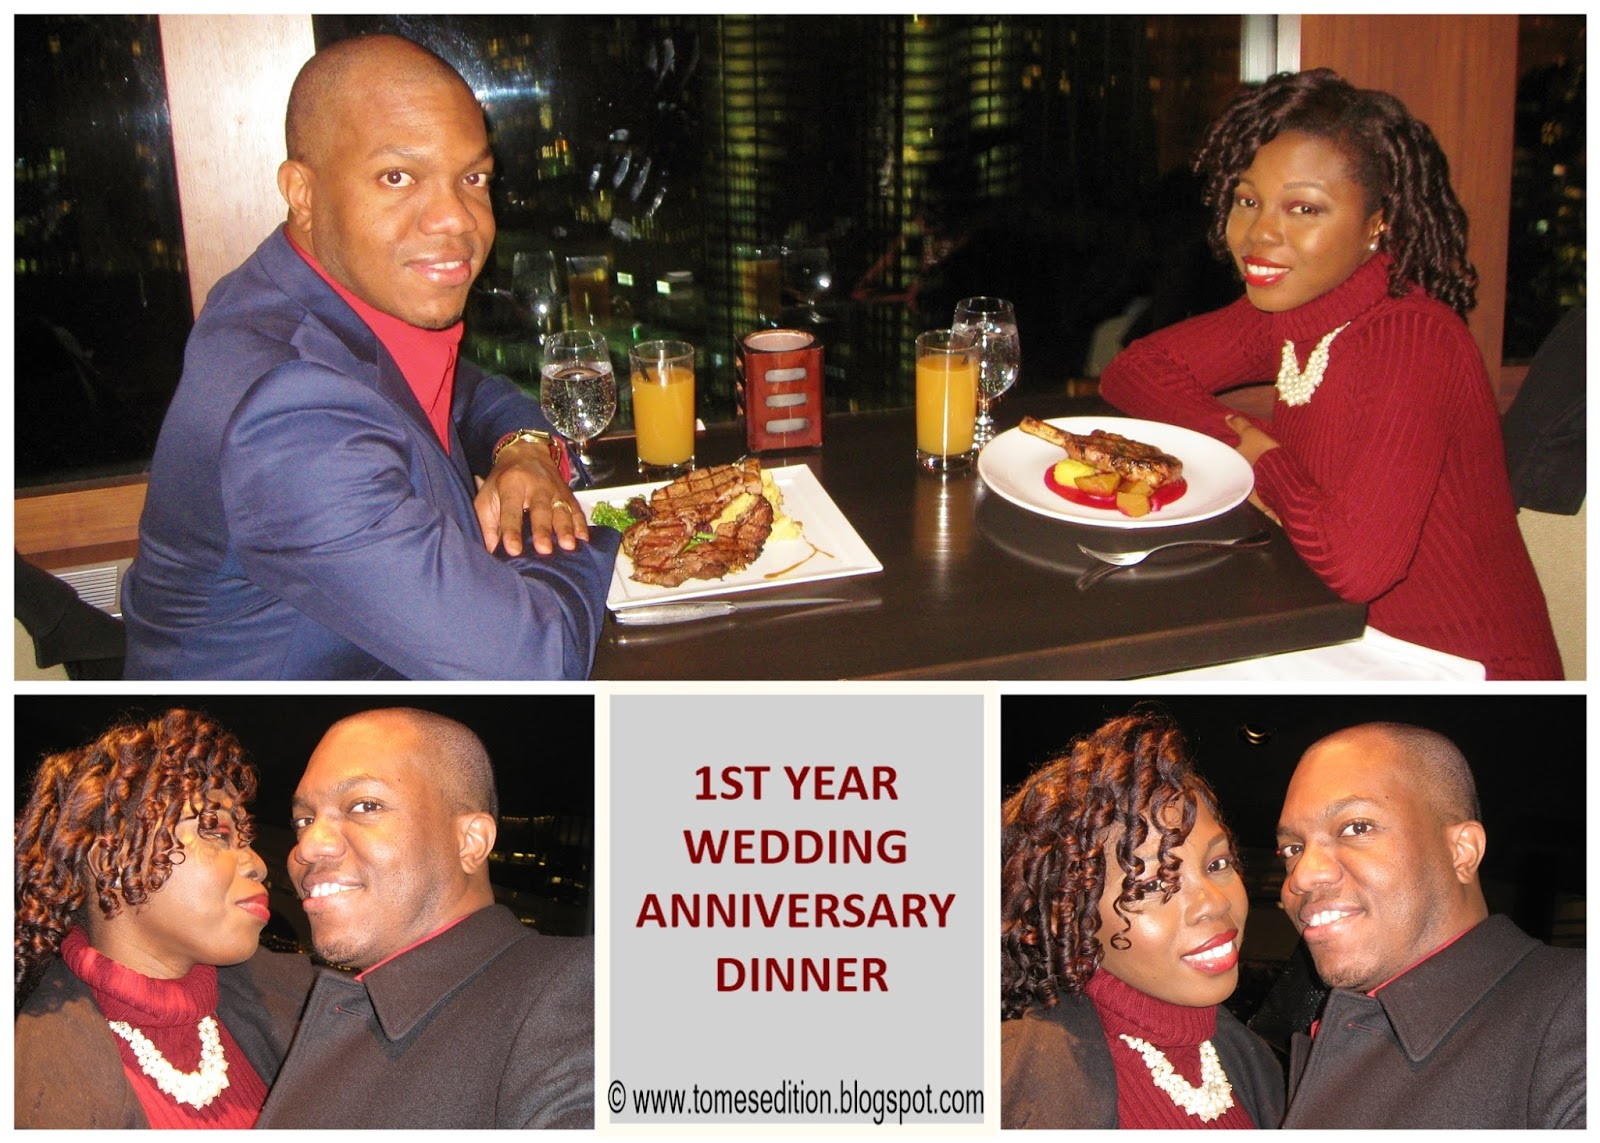 Tomes edition: our 1st wedding anniversaryu2026